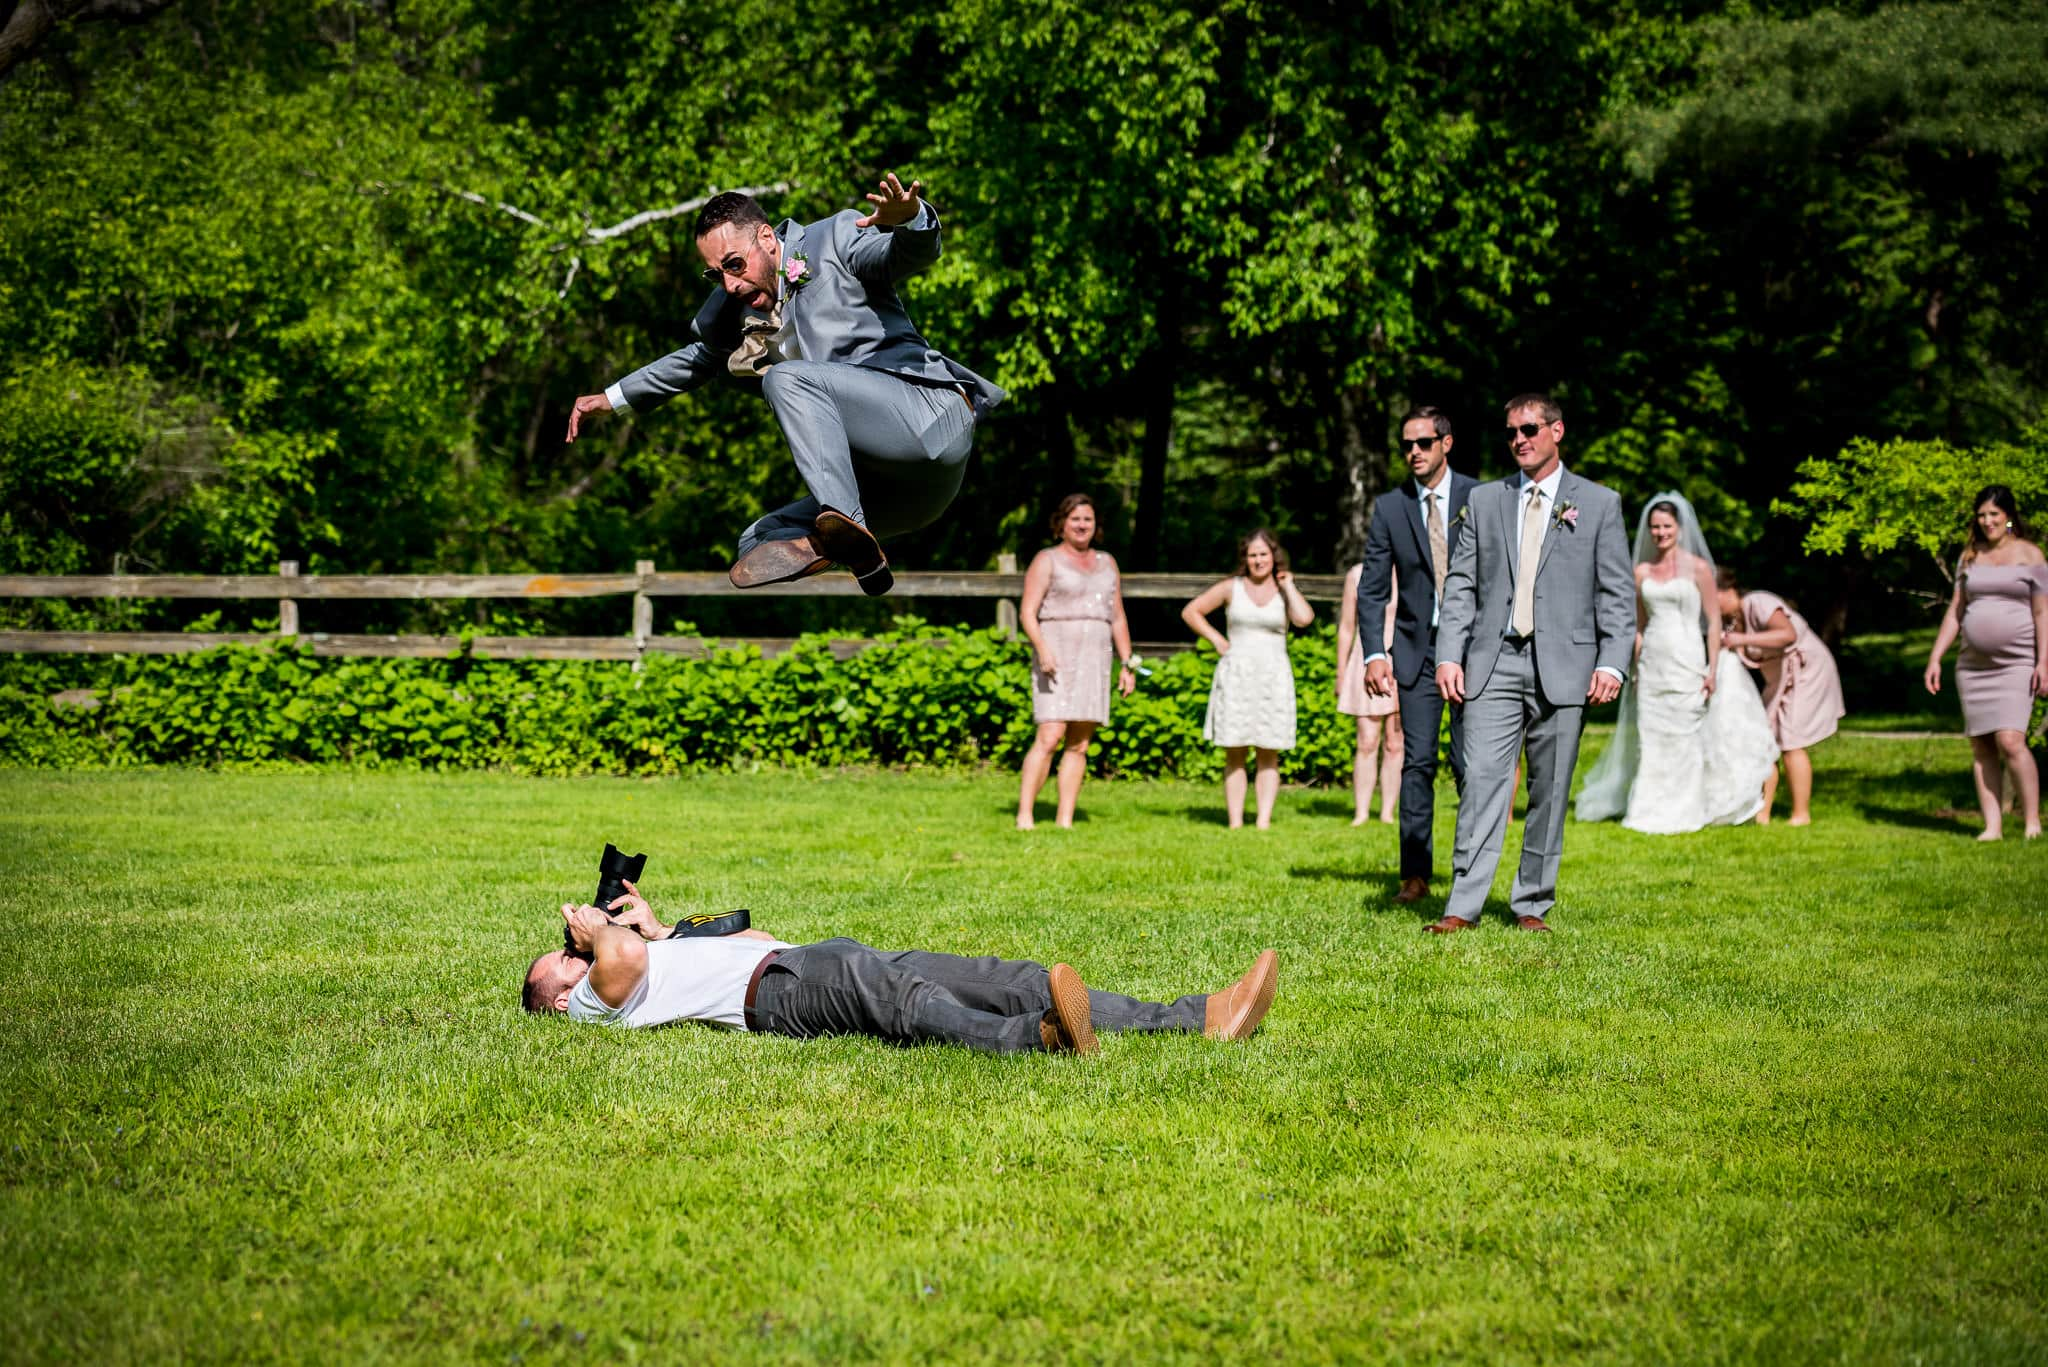 Minneapolis wedding photographer Jackson Tyler Eddy laying on the ground photographing groomsmen jumping over him